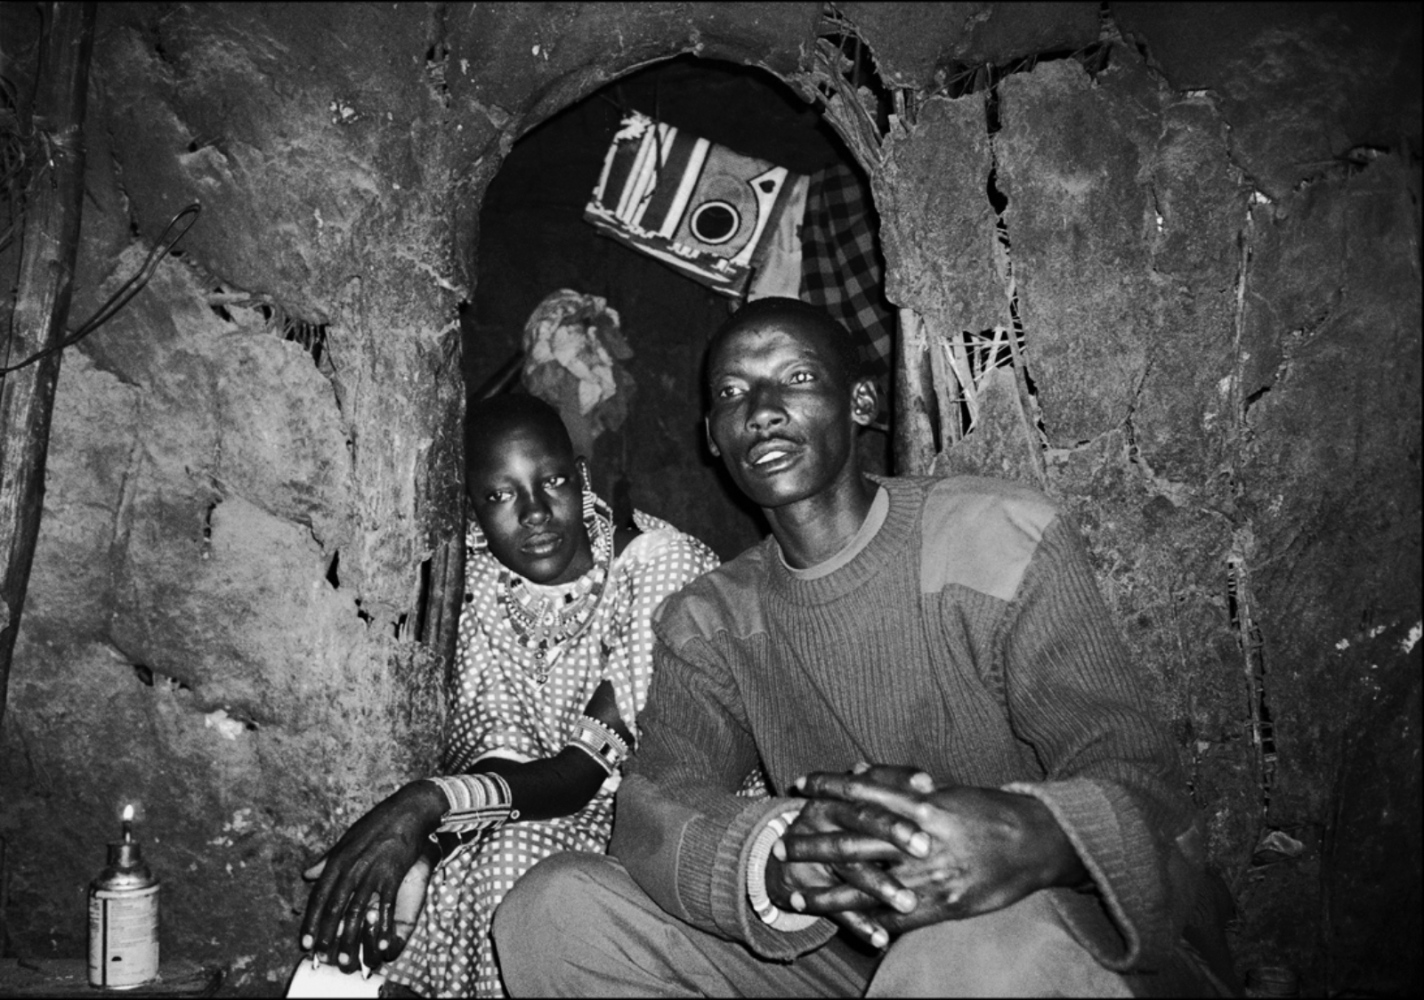 Man and Wife in Hut, Chyulu Hills, Kenya, August 2002